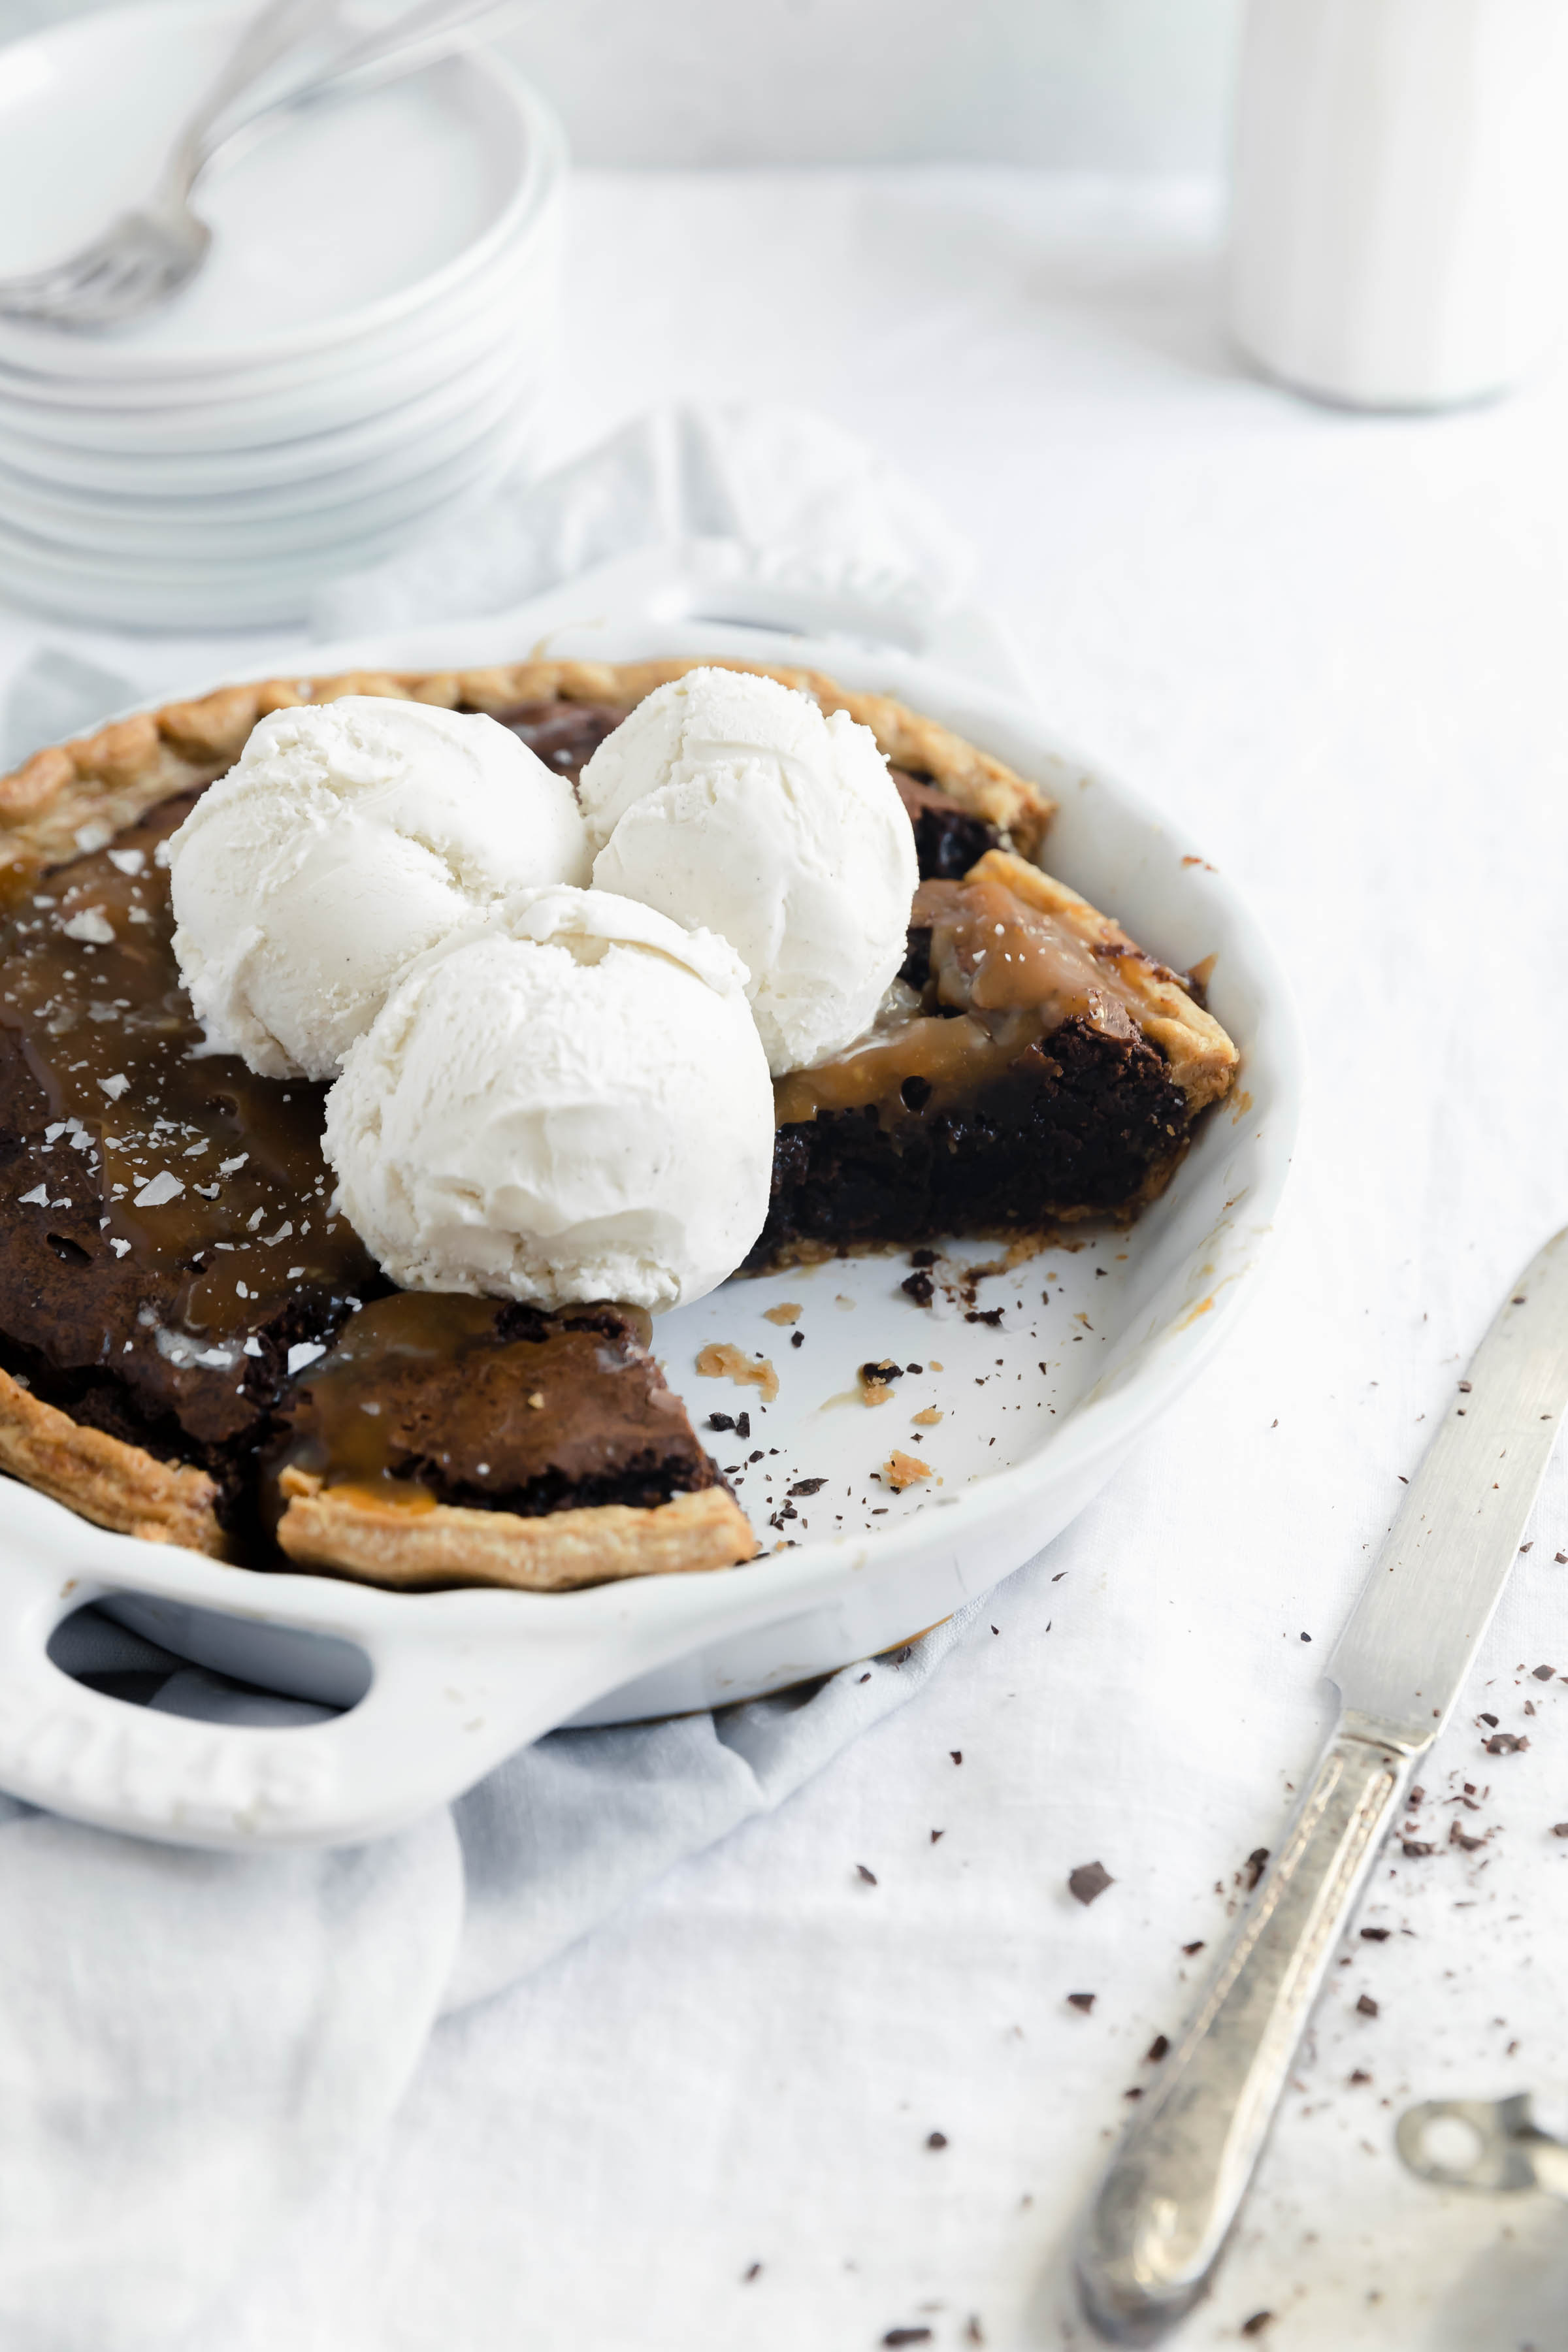 This salted caramel brownie pie is a lazy girl's dream. Made with a store bought brownie mix, pie crust, and premade caramel sauce,this pie comes together in a pinch!